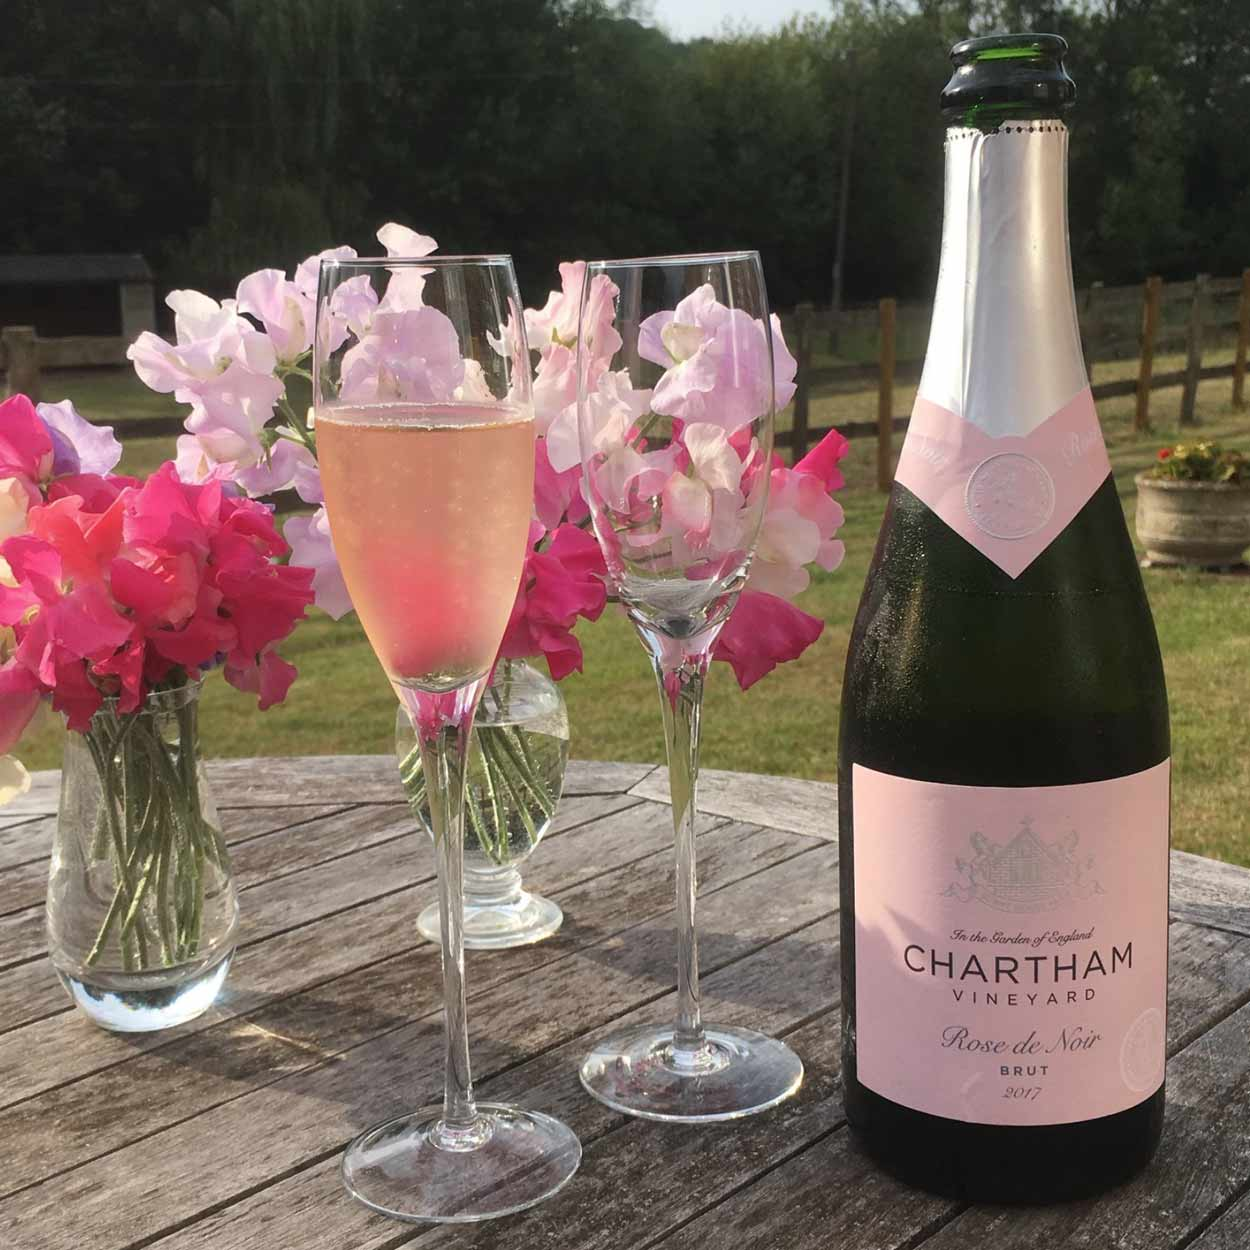 celebrate with Rose de Noir from chartham vineyard